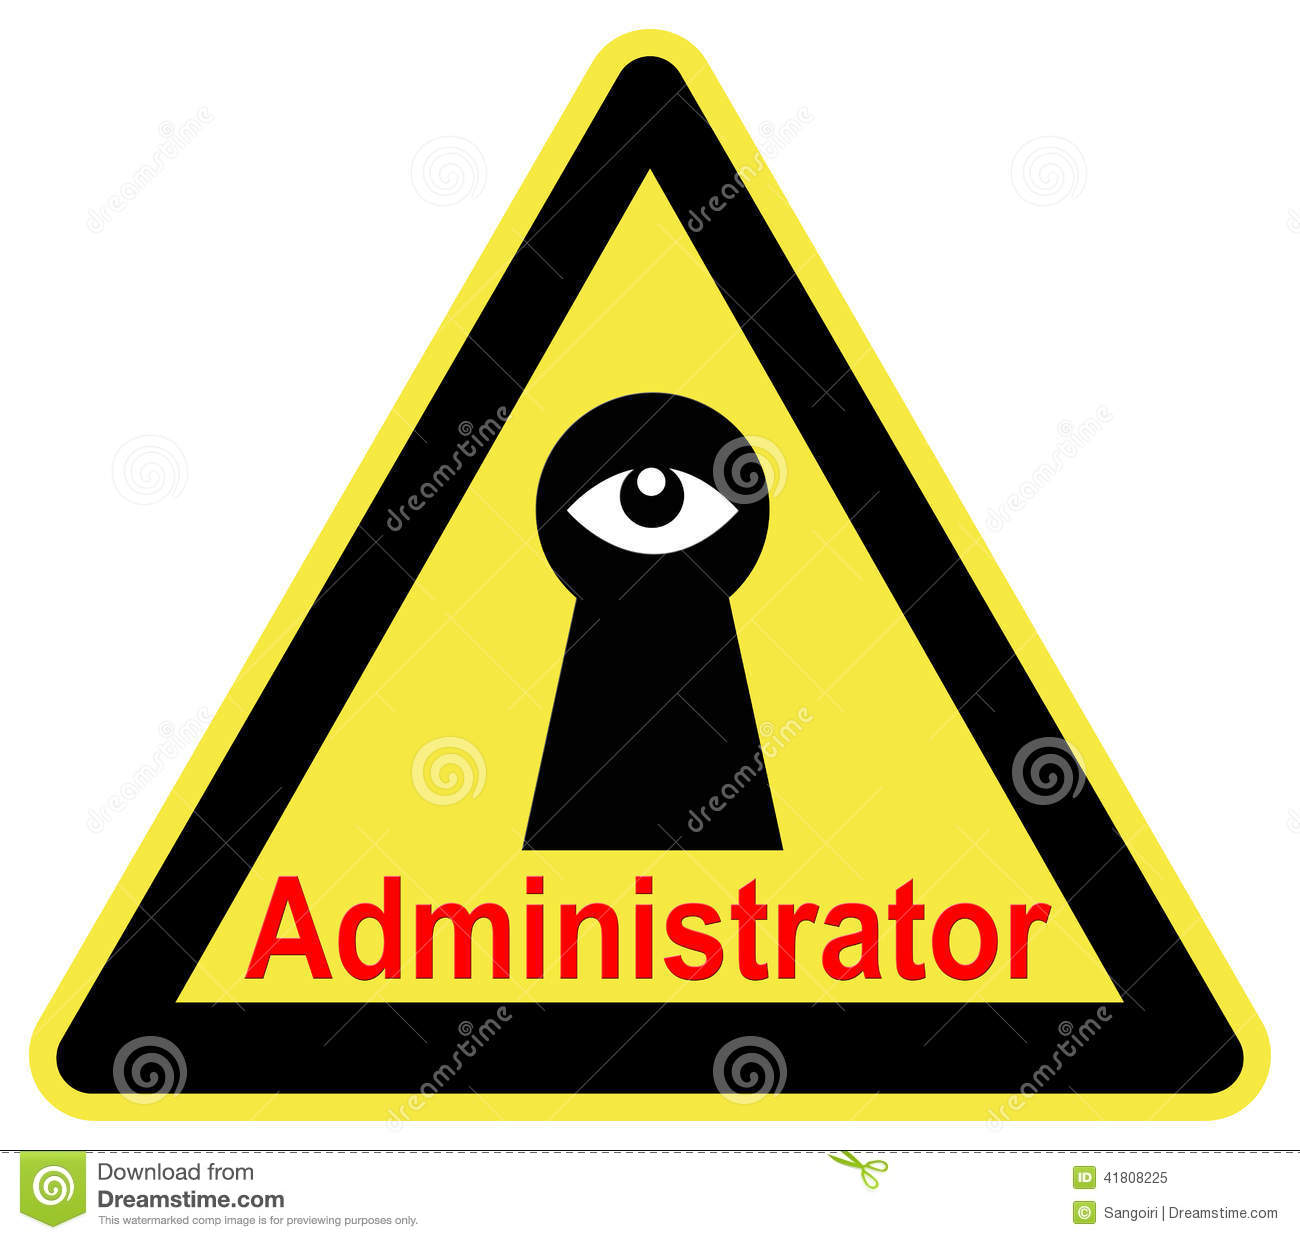 Administrator - The Administrator Is Watching You